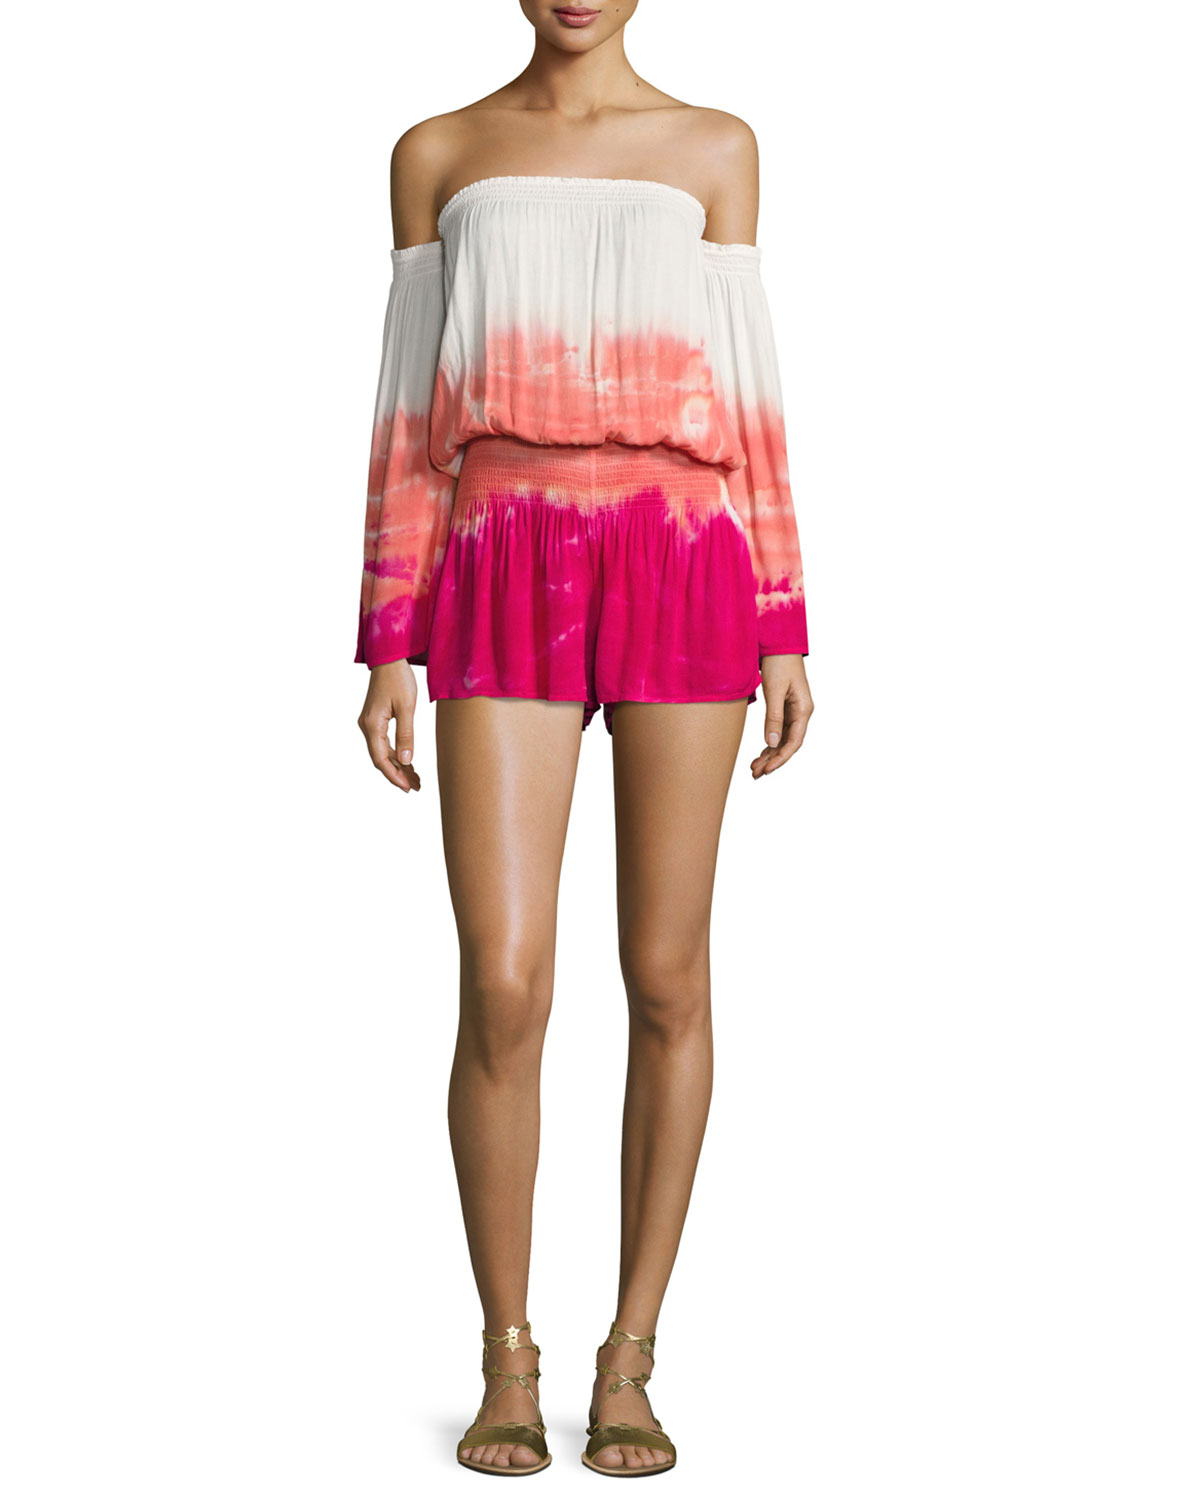 9c4df7964ce3 Young Fabulous and BrokeEstelle Tie-Dye Ombré Off-the-Shoulder Romper